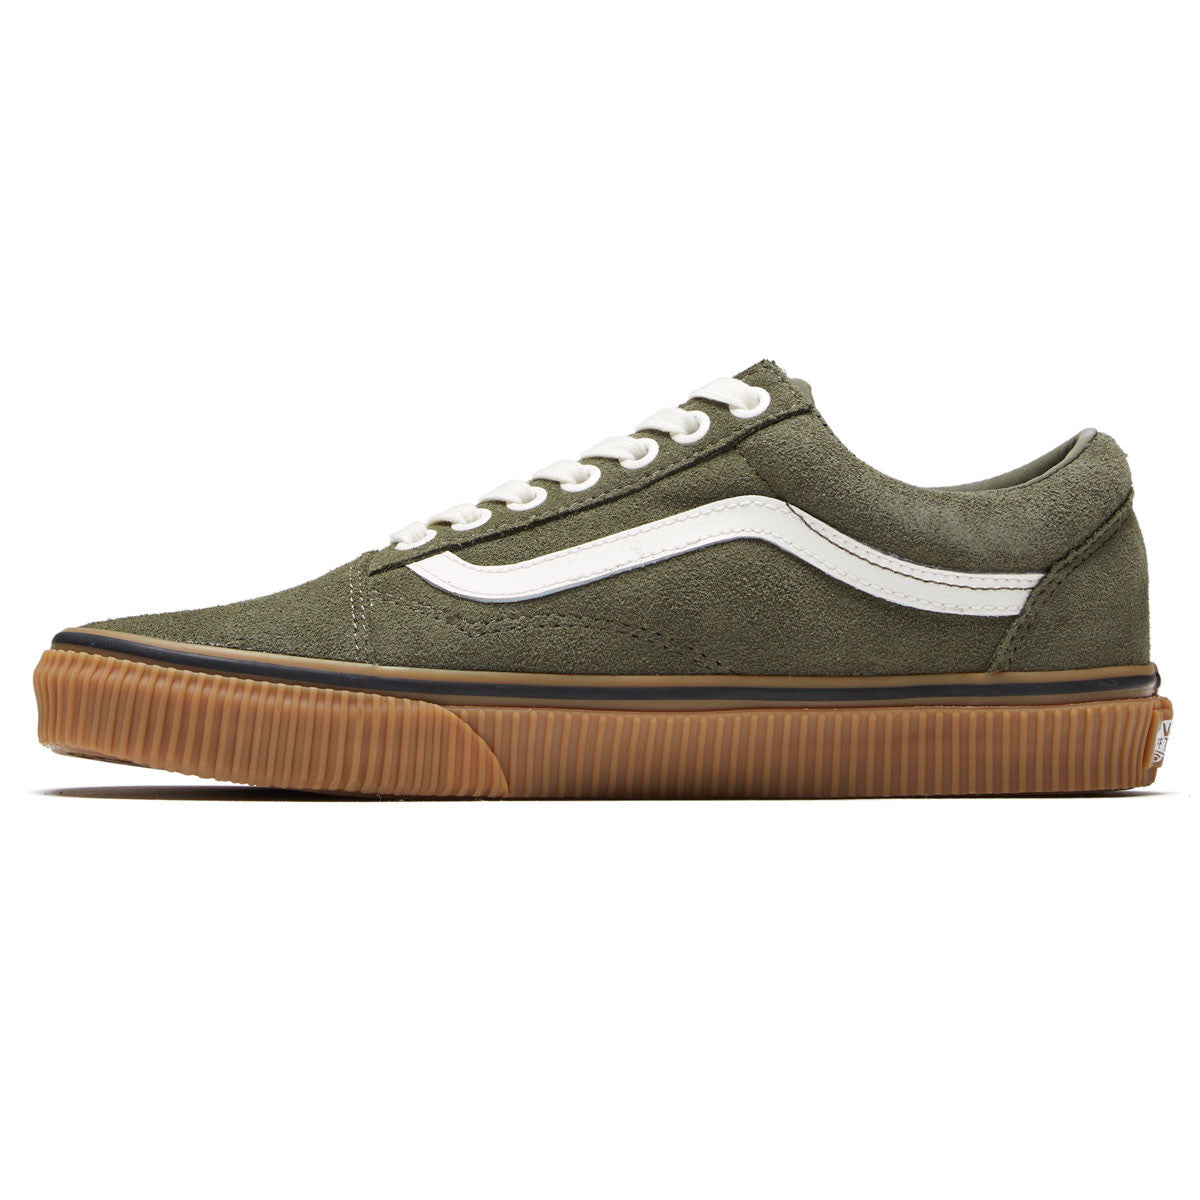 Vans Suede Old Skool (Olive   Gum) – Trilogy Merch PH 1f9002b84